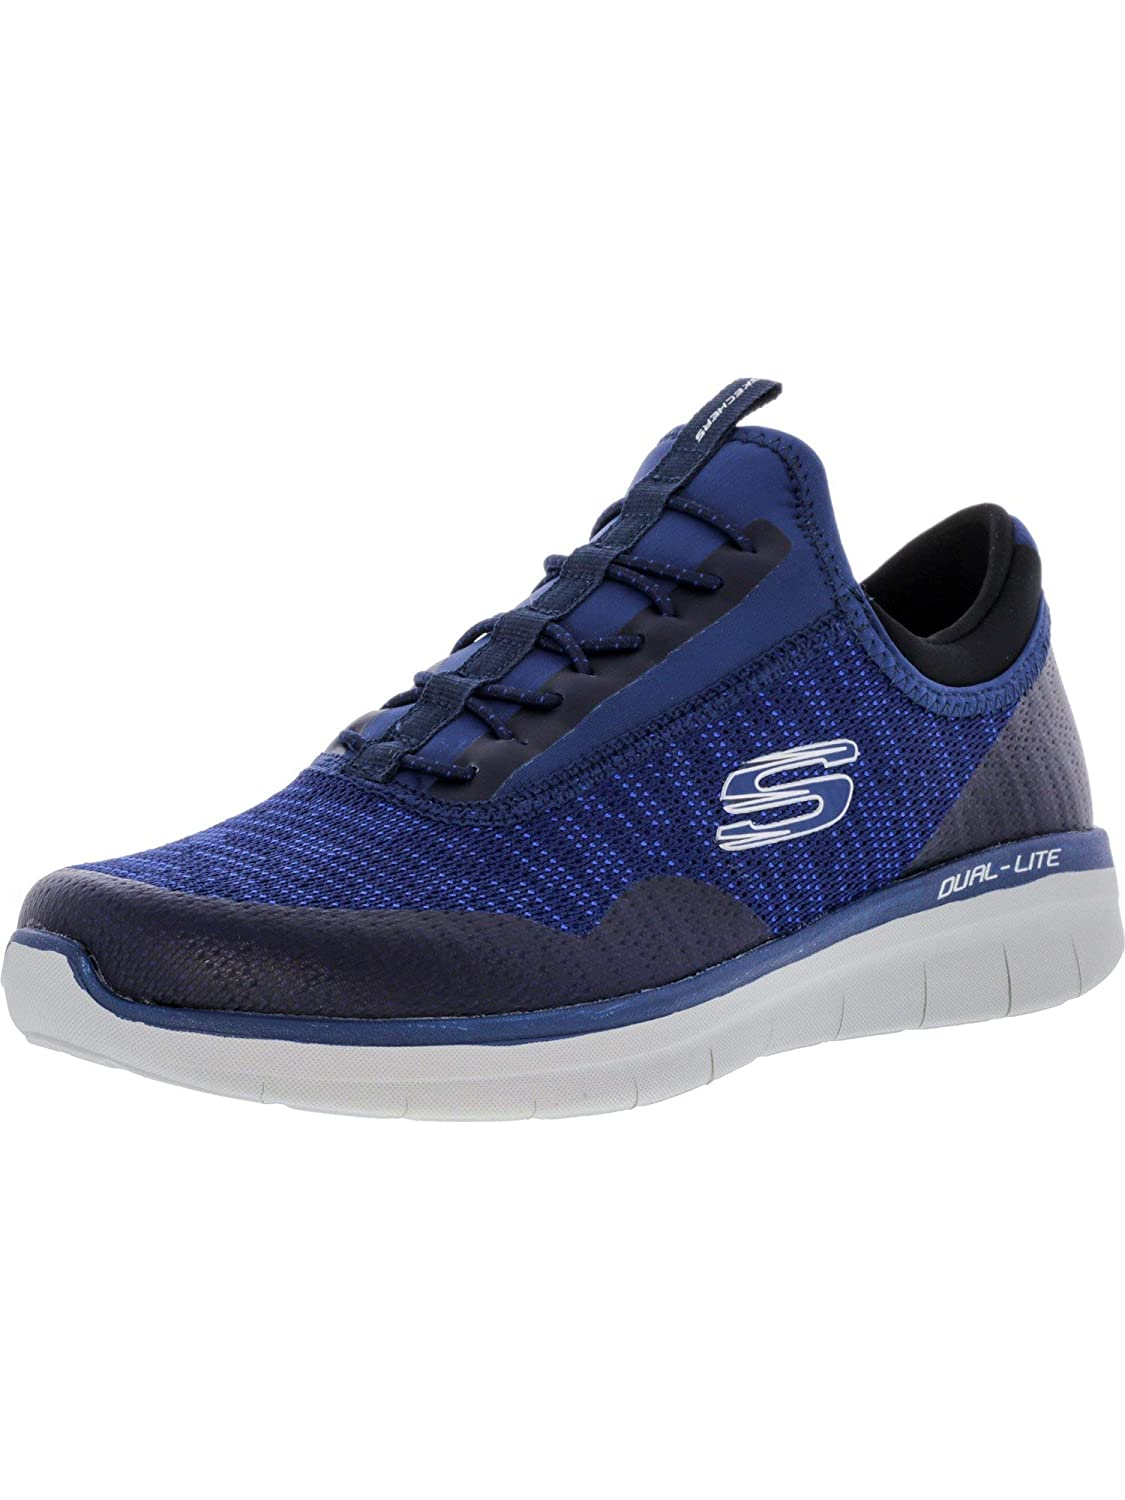 Skechers Hombre Synergy Synergy Synergy 2.0 - Turris Ankle-High Training Zapatos 3daf60